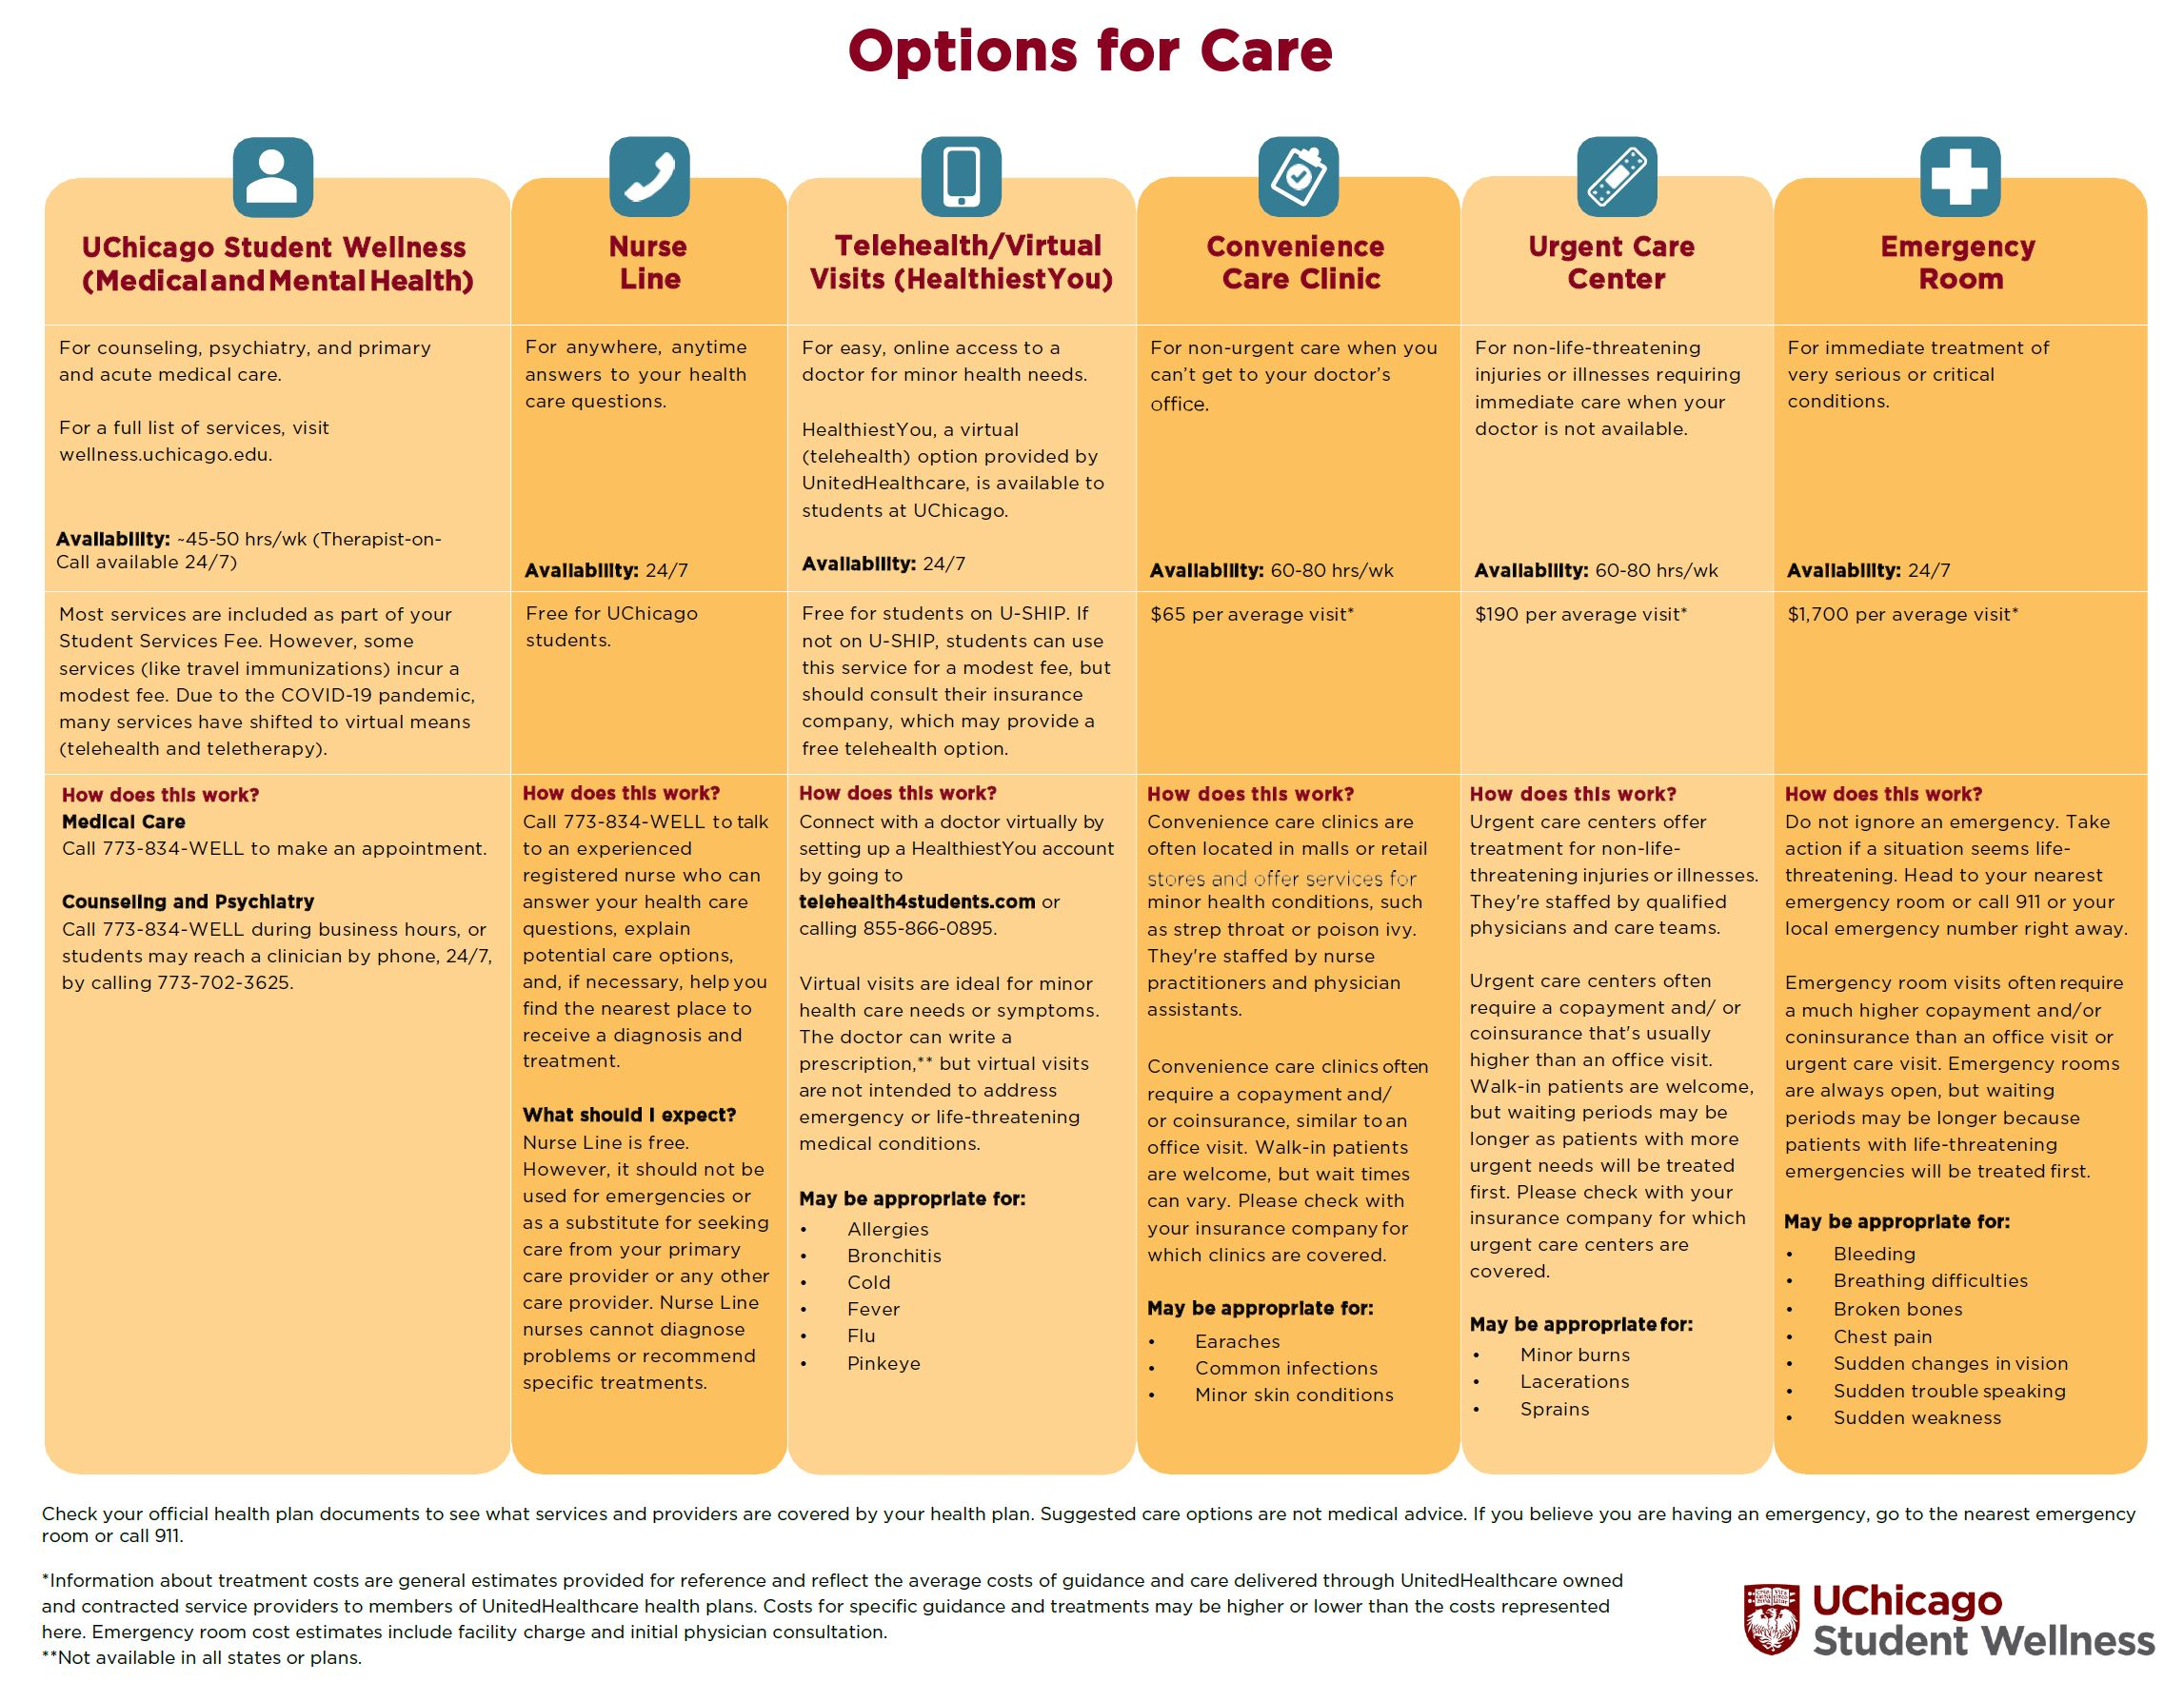 Options for Care